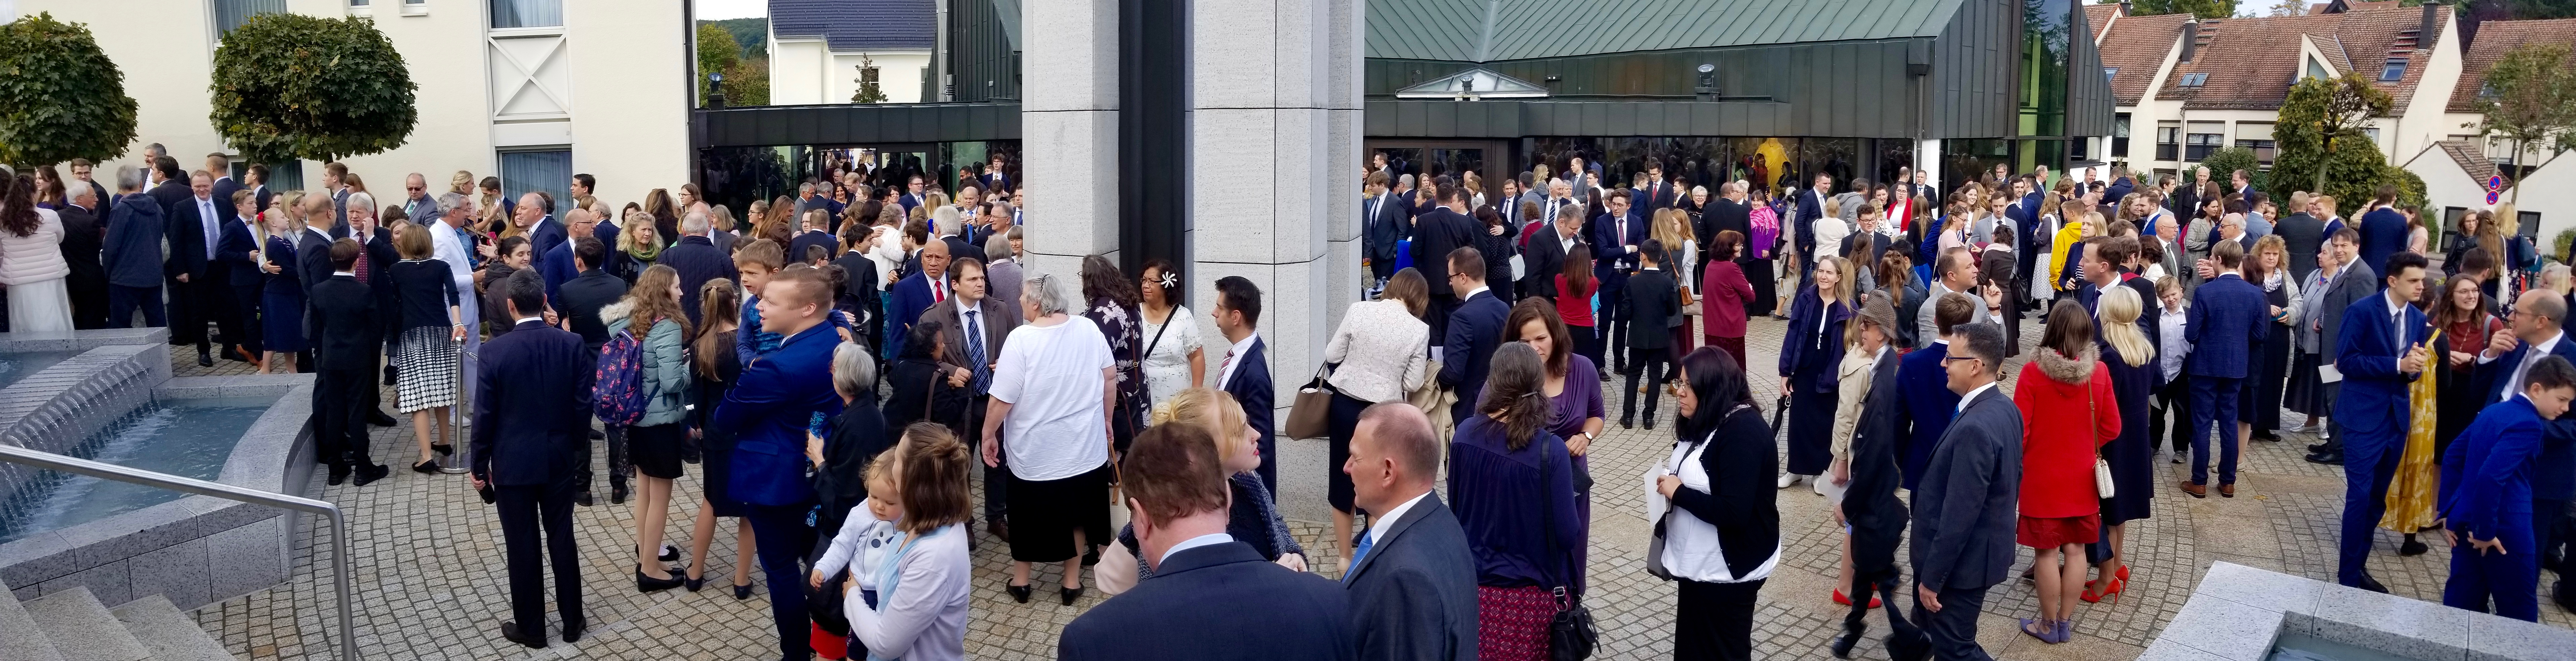 A panoramic view of the crowded plaza at the entrance of the Frankfurt Germany Temple between rededication sessions on Sunday, Oct. 20, 2019.